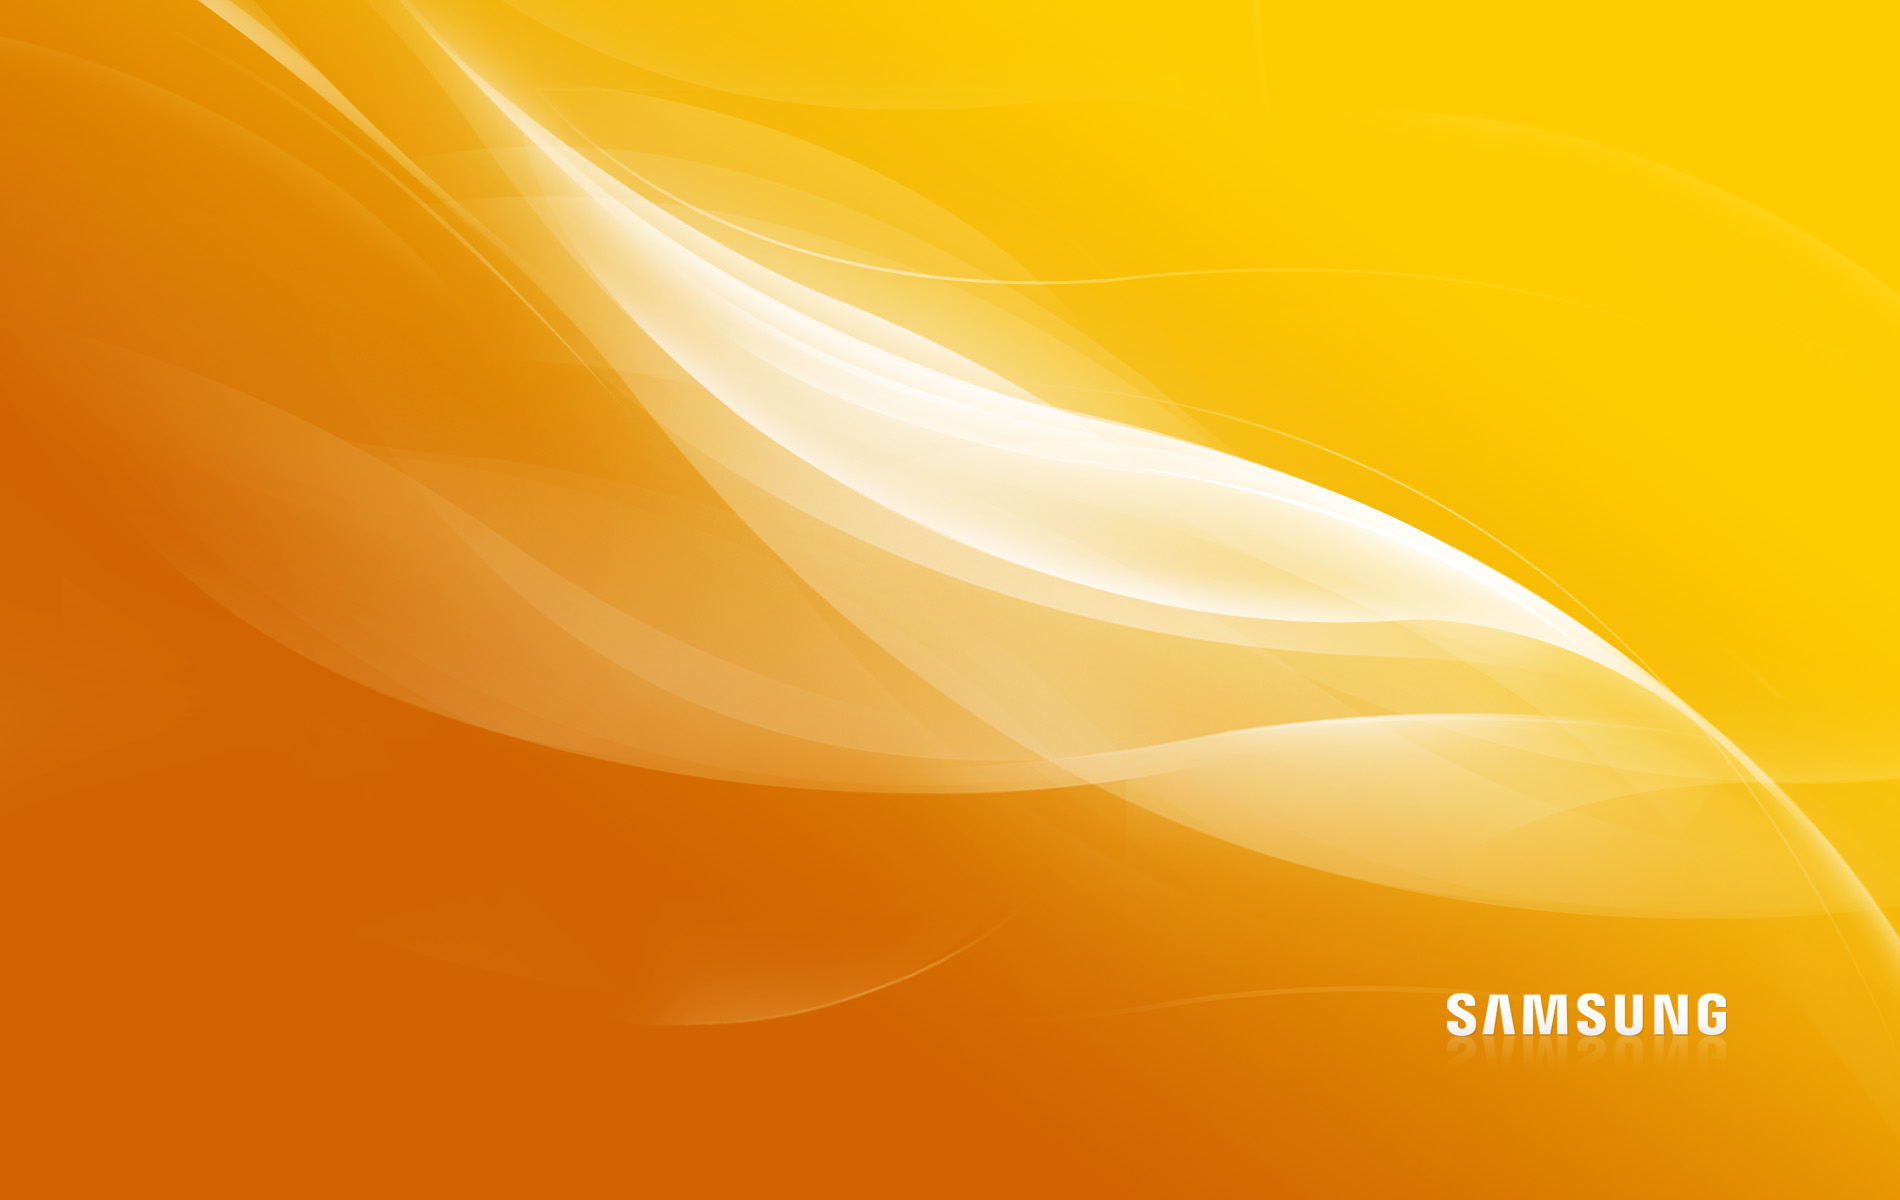 Free Download Samsung Wallpapers Pc Doctor Ardee 1900x1200 For Your Desktop Mobile Tablet Explore 41 Wallpapers For Samsung Free Wallpapers For Samsung Galaxy Sexy Wallpaper Windows Free Samsung Wallpaper